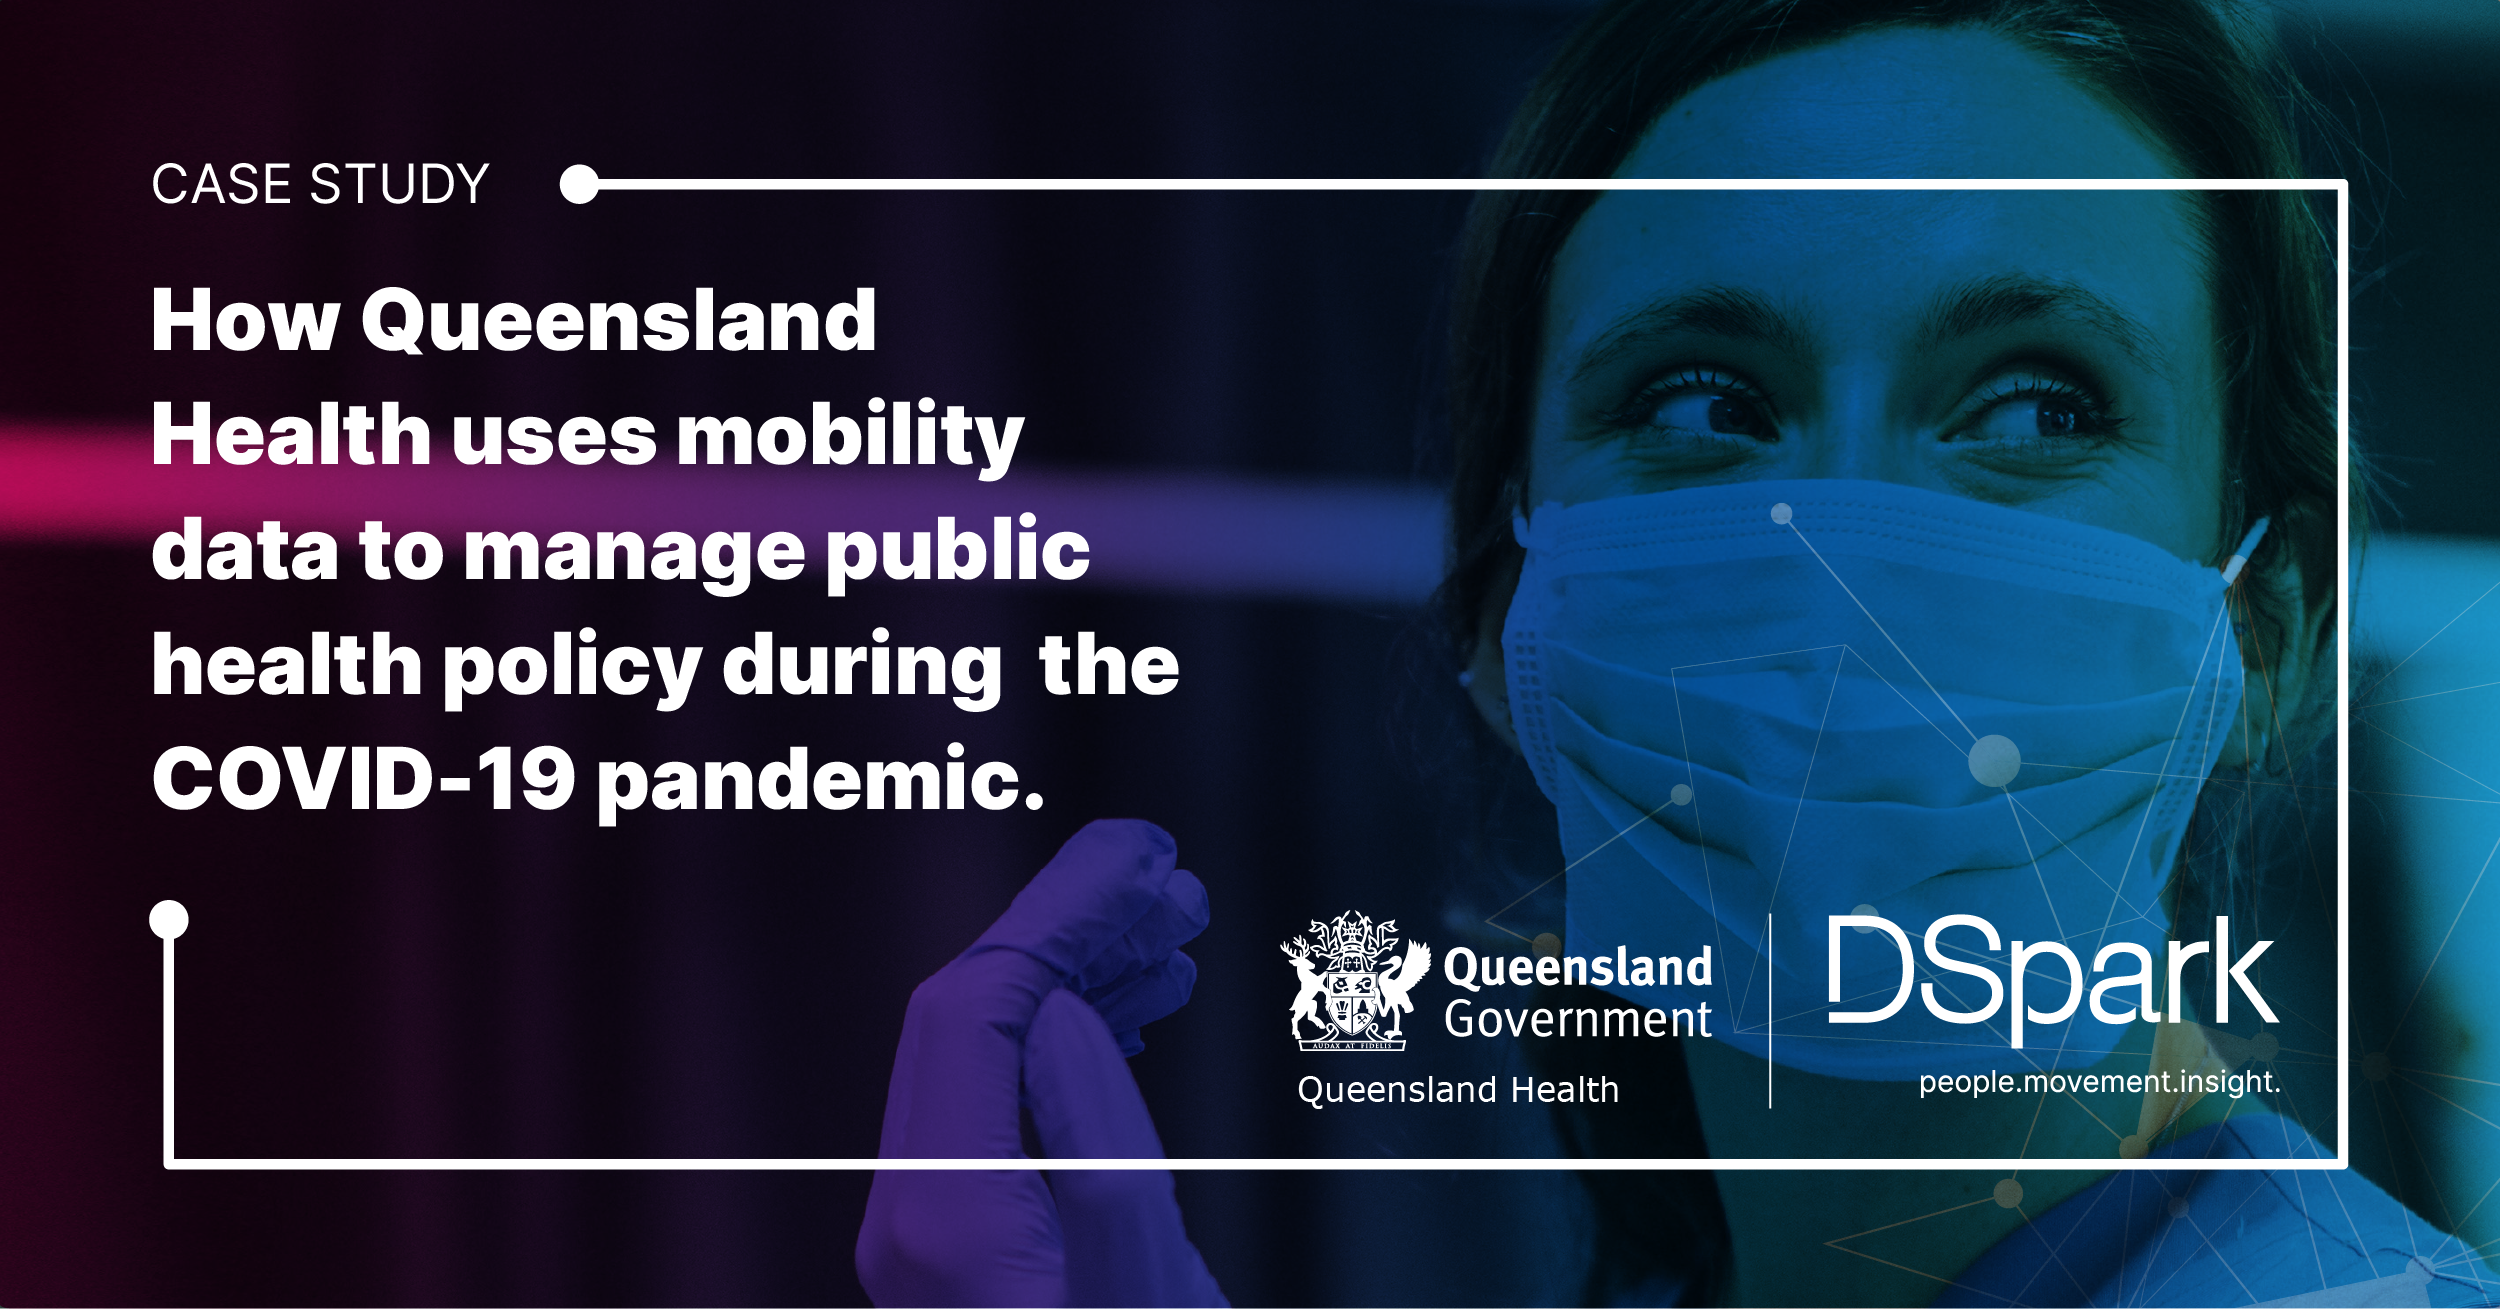 Queensland Health partners with DSpark to manage public health policy